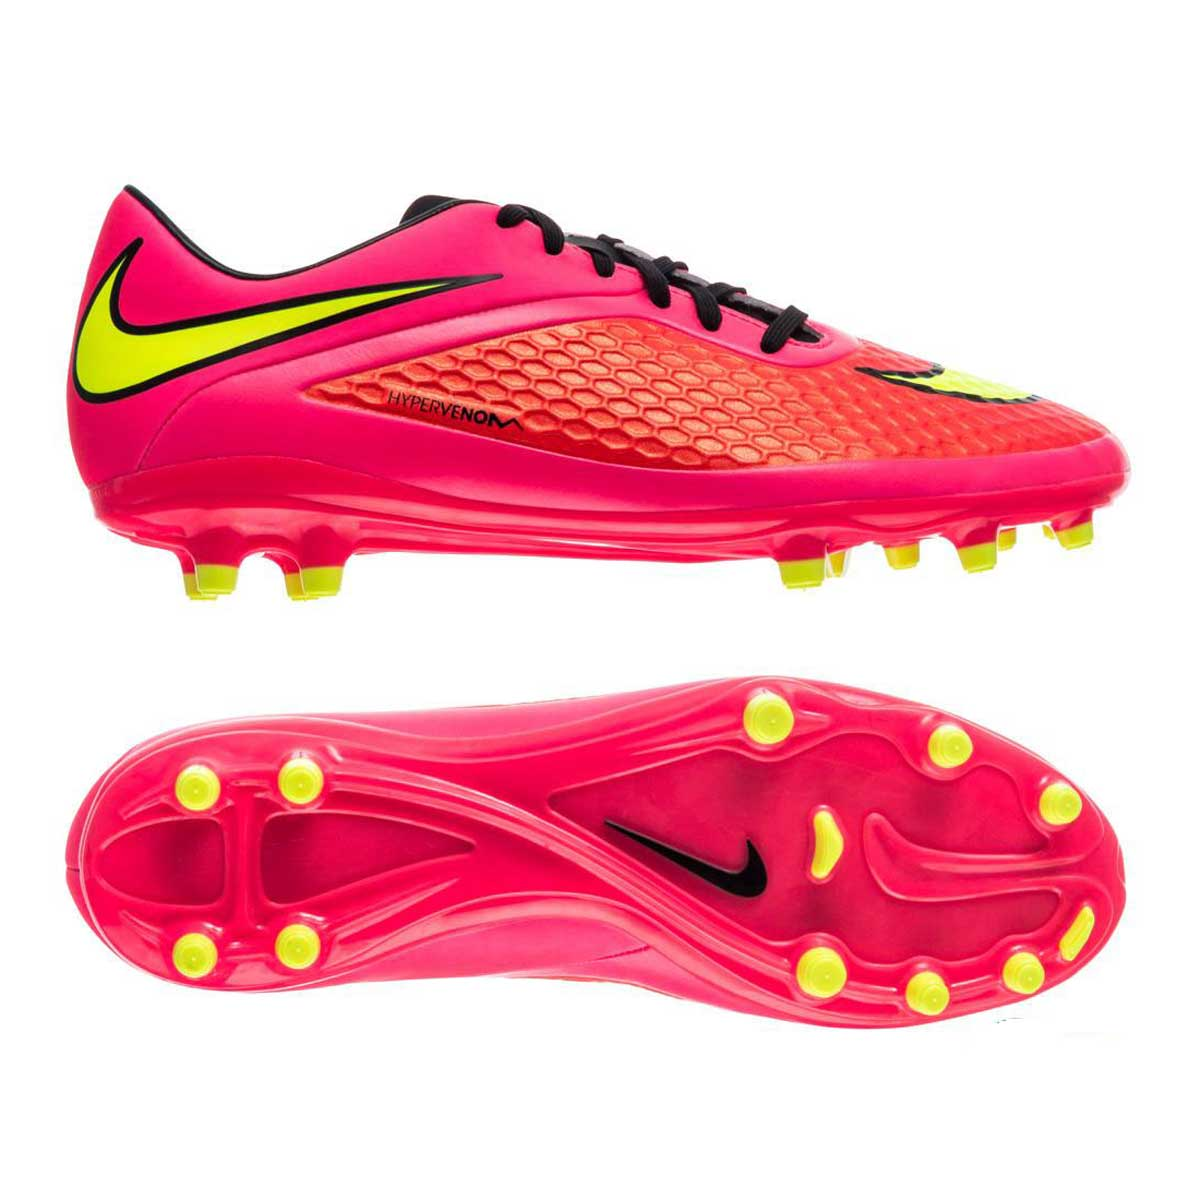 Football Shoes, Football, Sports, Buy, Nike, Nike Hypervenom Phelon FG Football  Shoes , ,